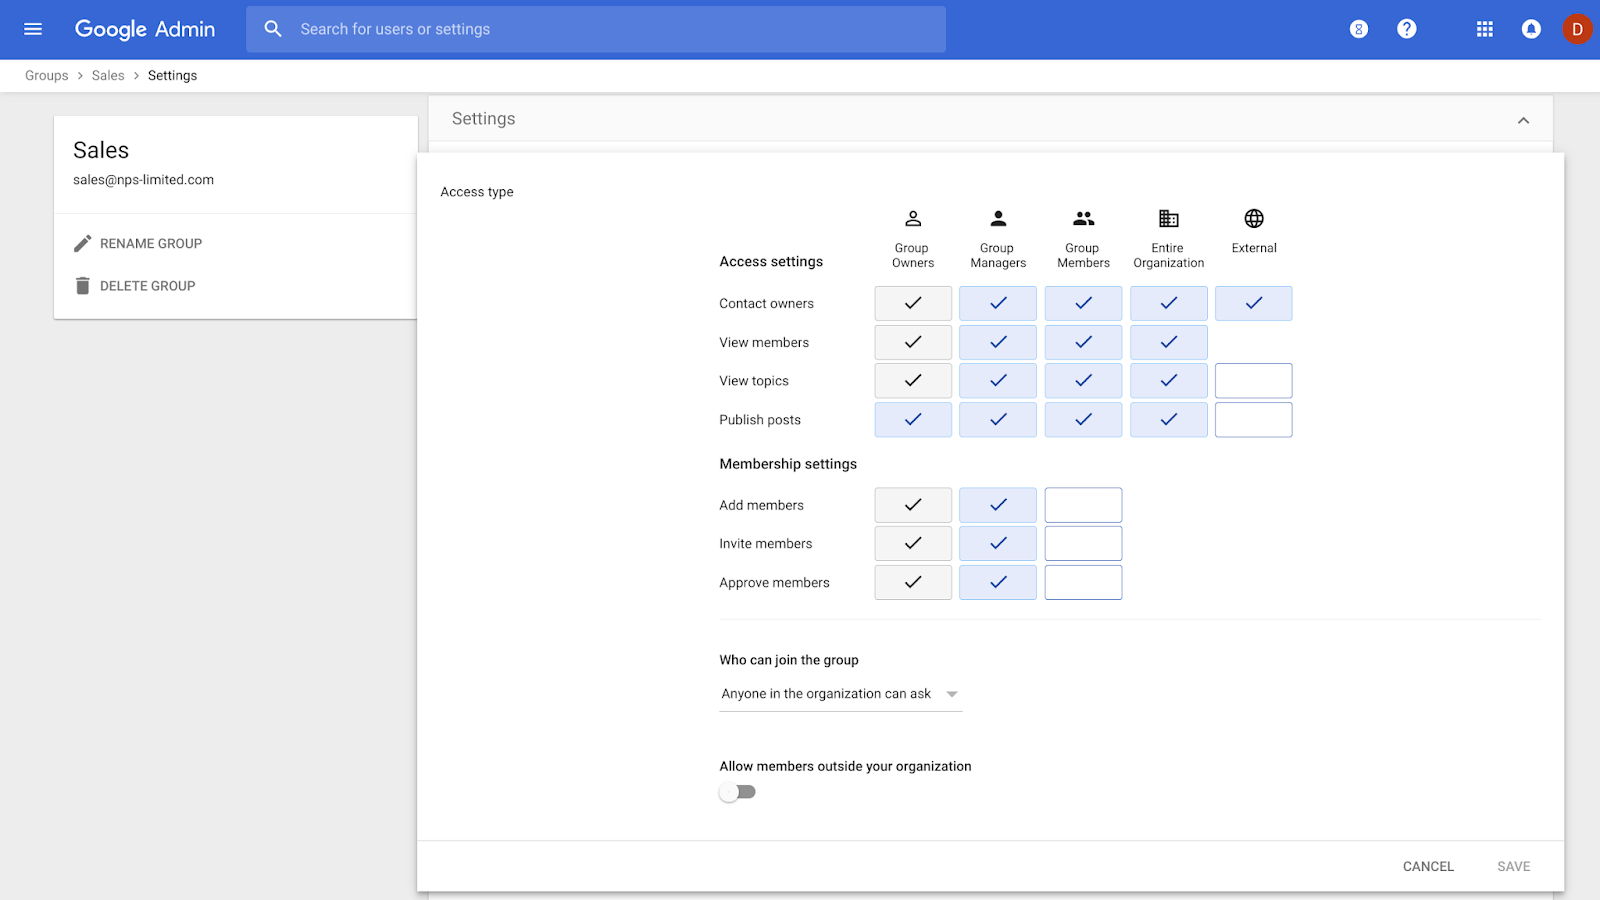 G Suite Updates Blog: Better group management in the G Suite Admin